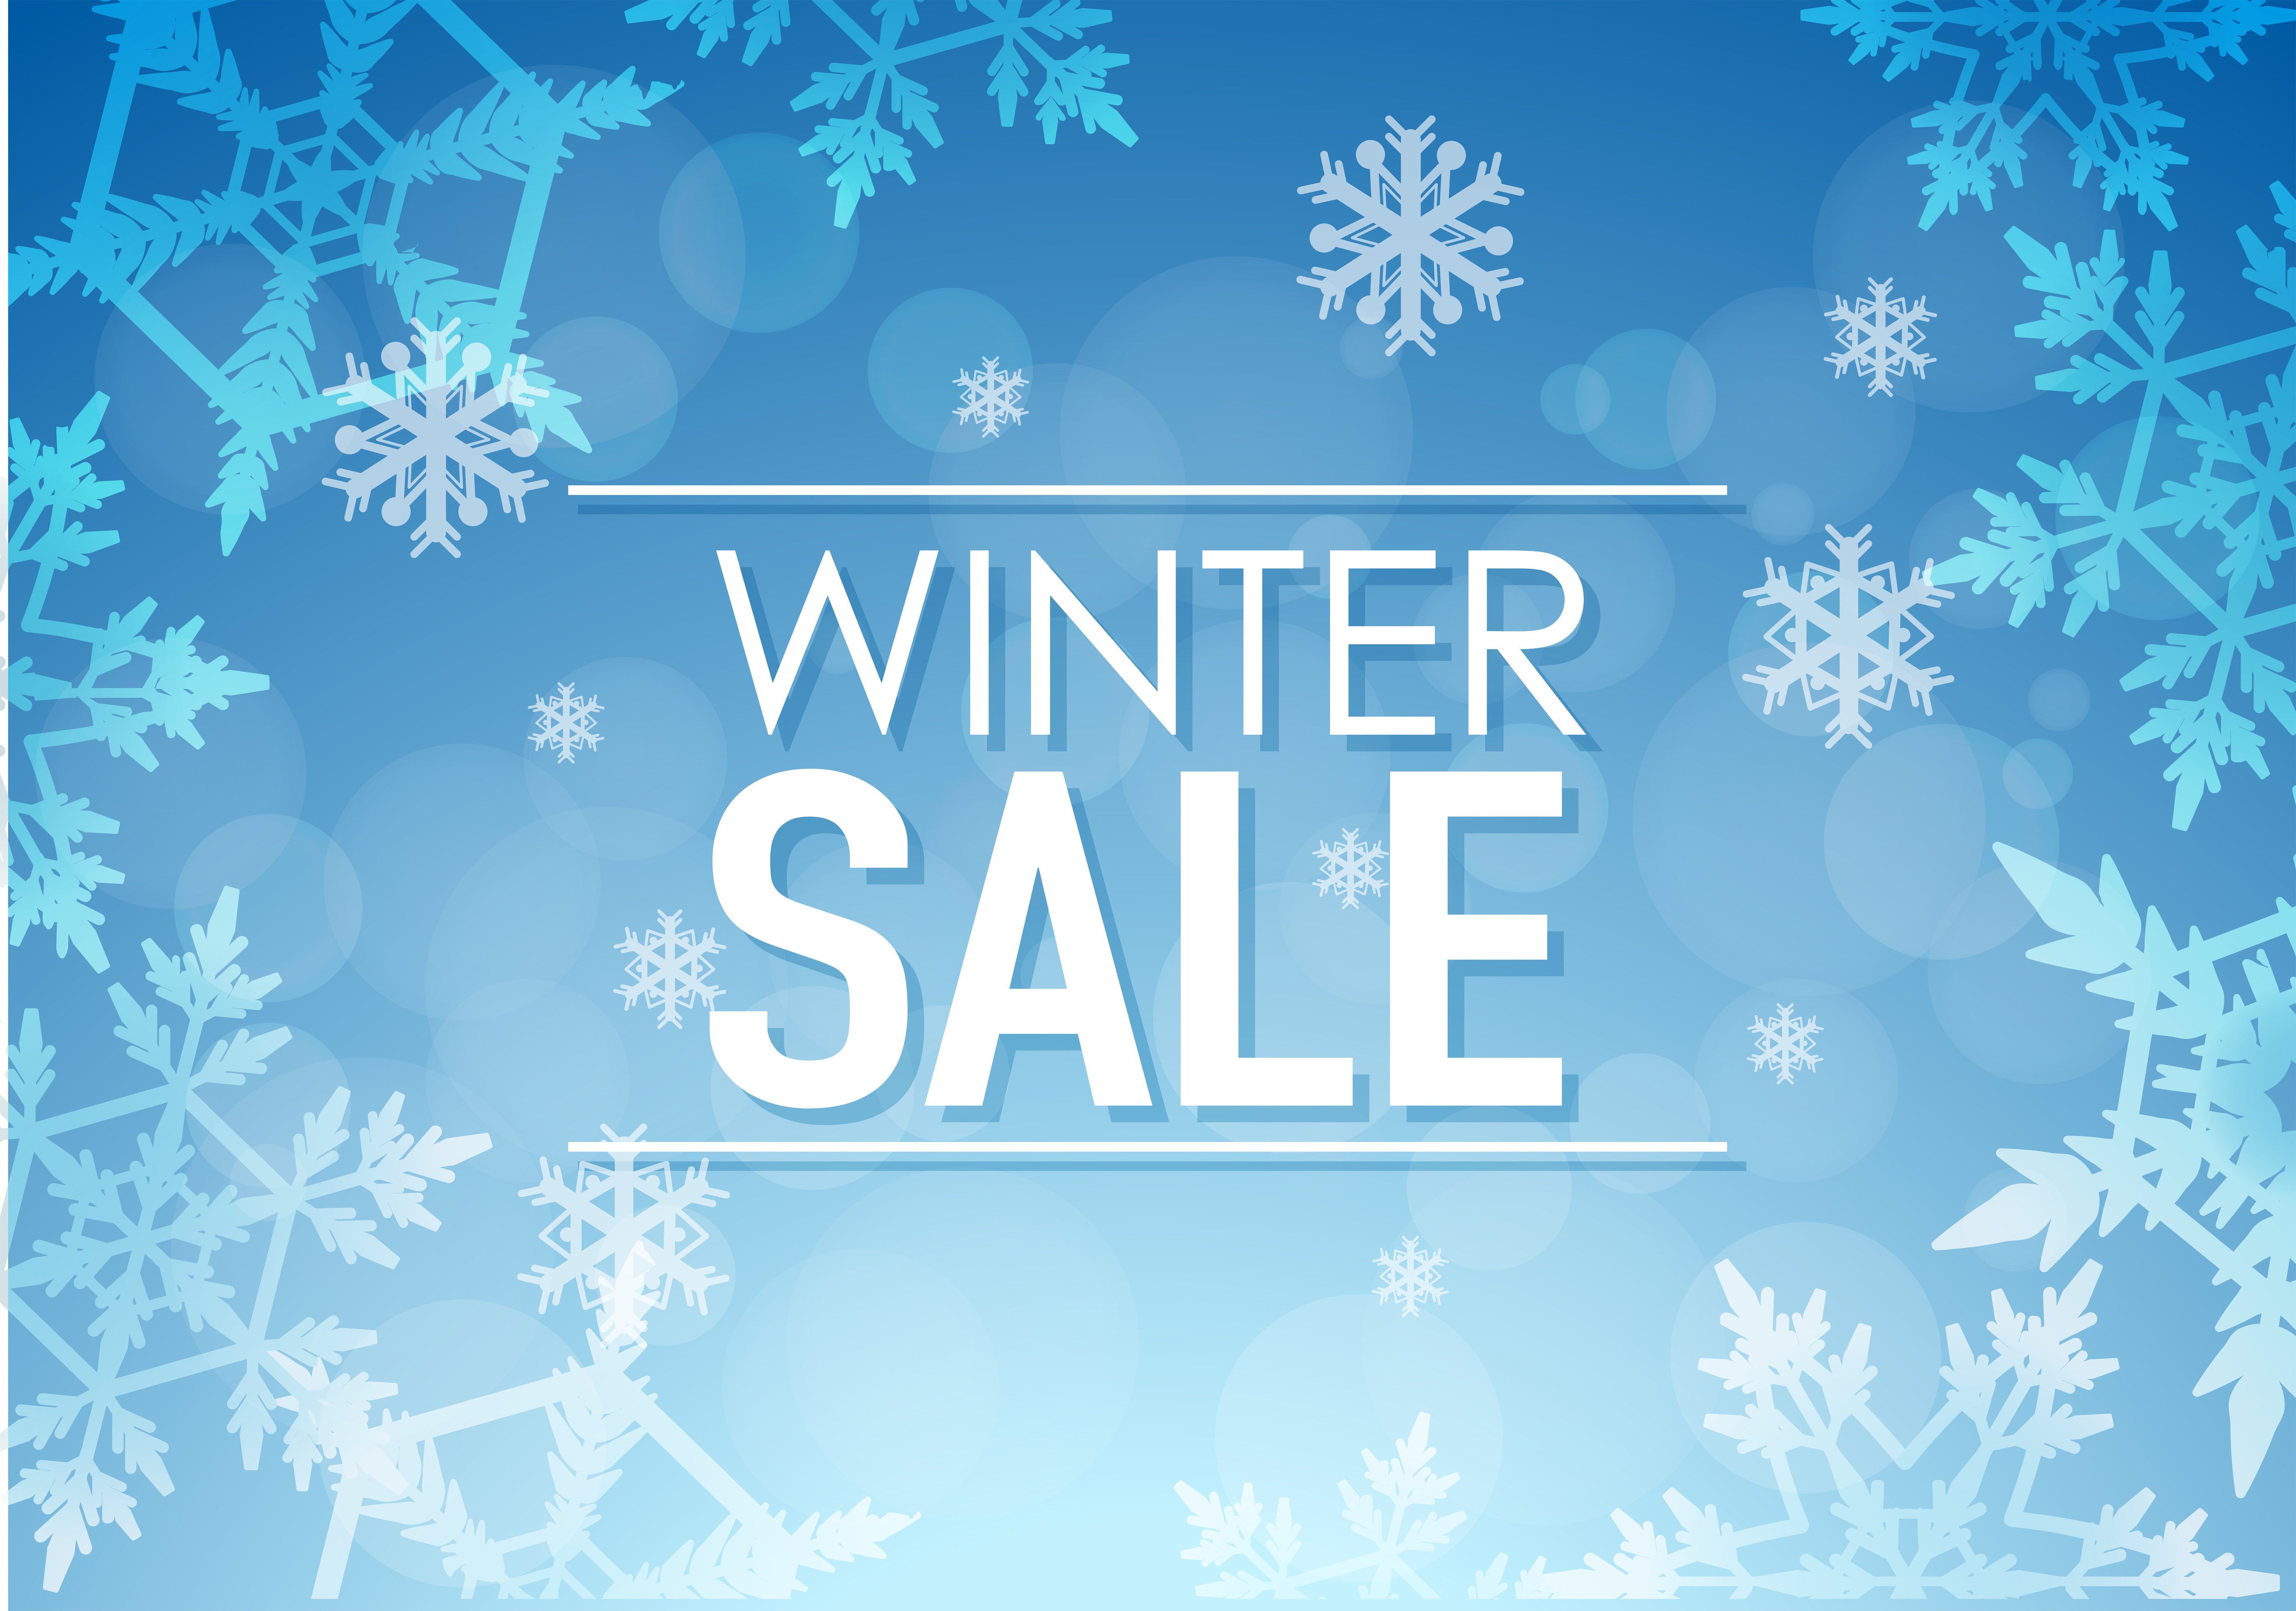 Winter sale poster design with snowflakes - Download Free ... | 5599 x 3929 jpeg 4450kB